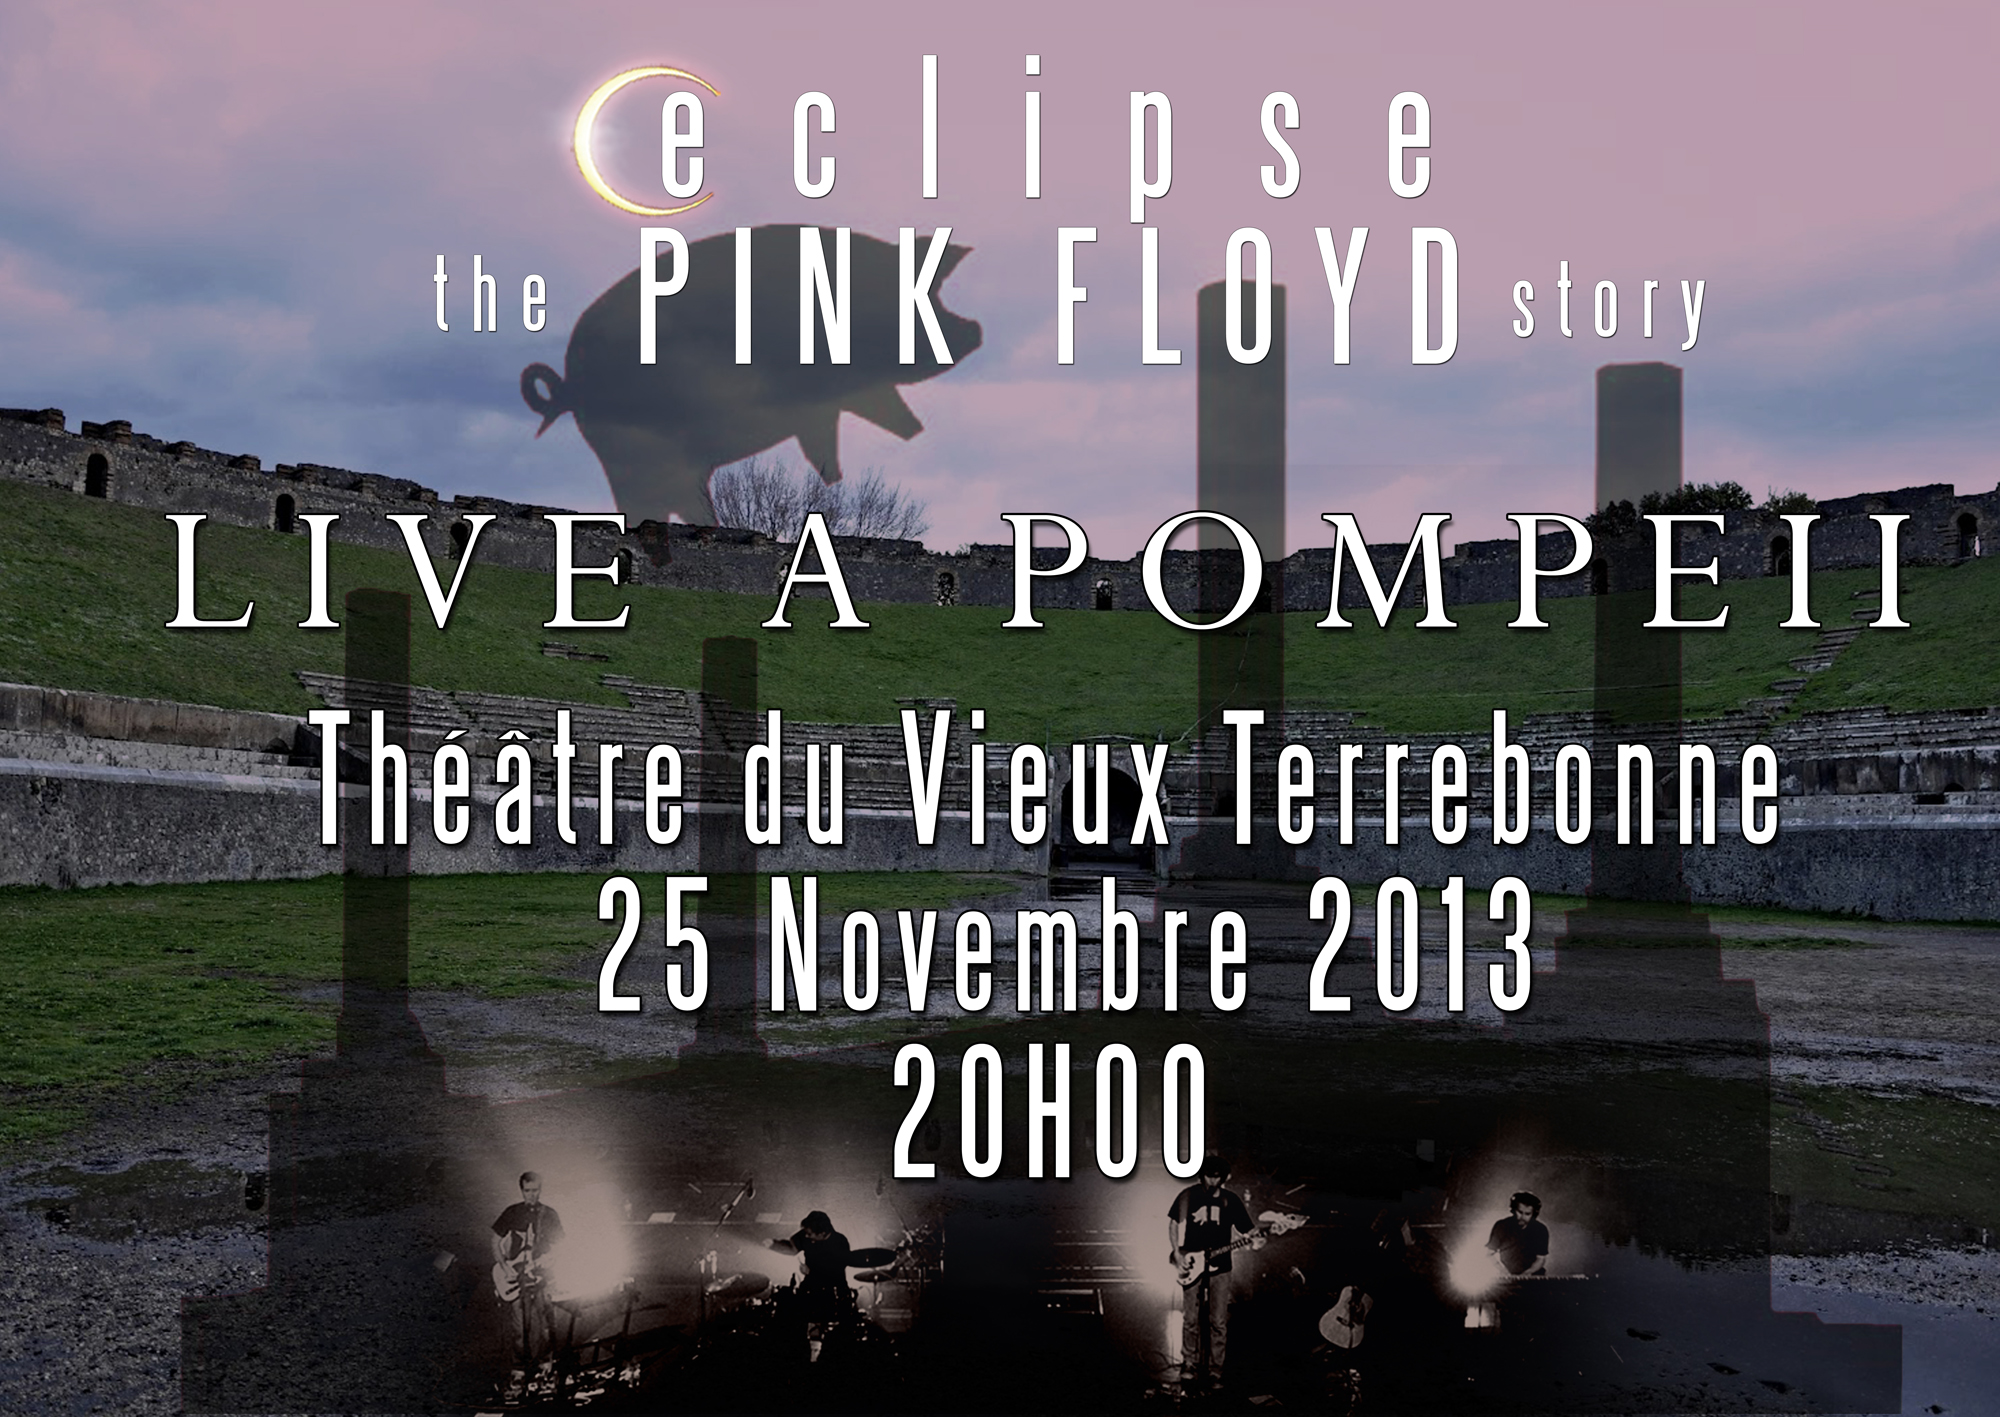 Eclipse - The Pink Floyd Story